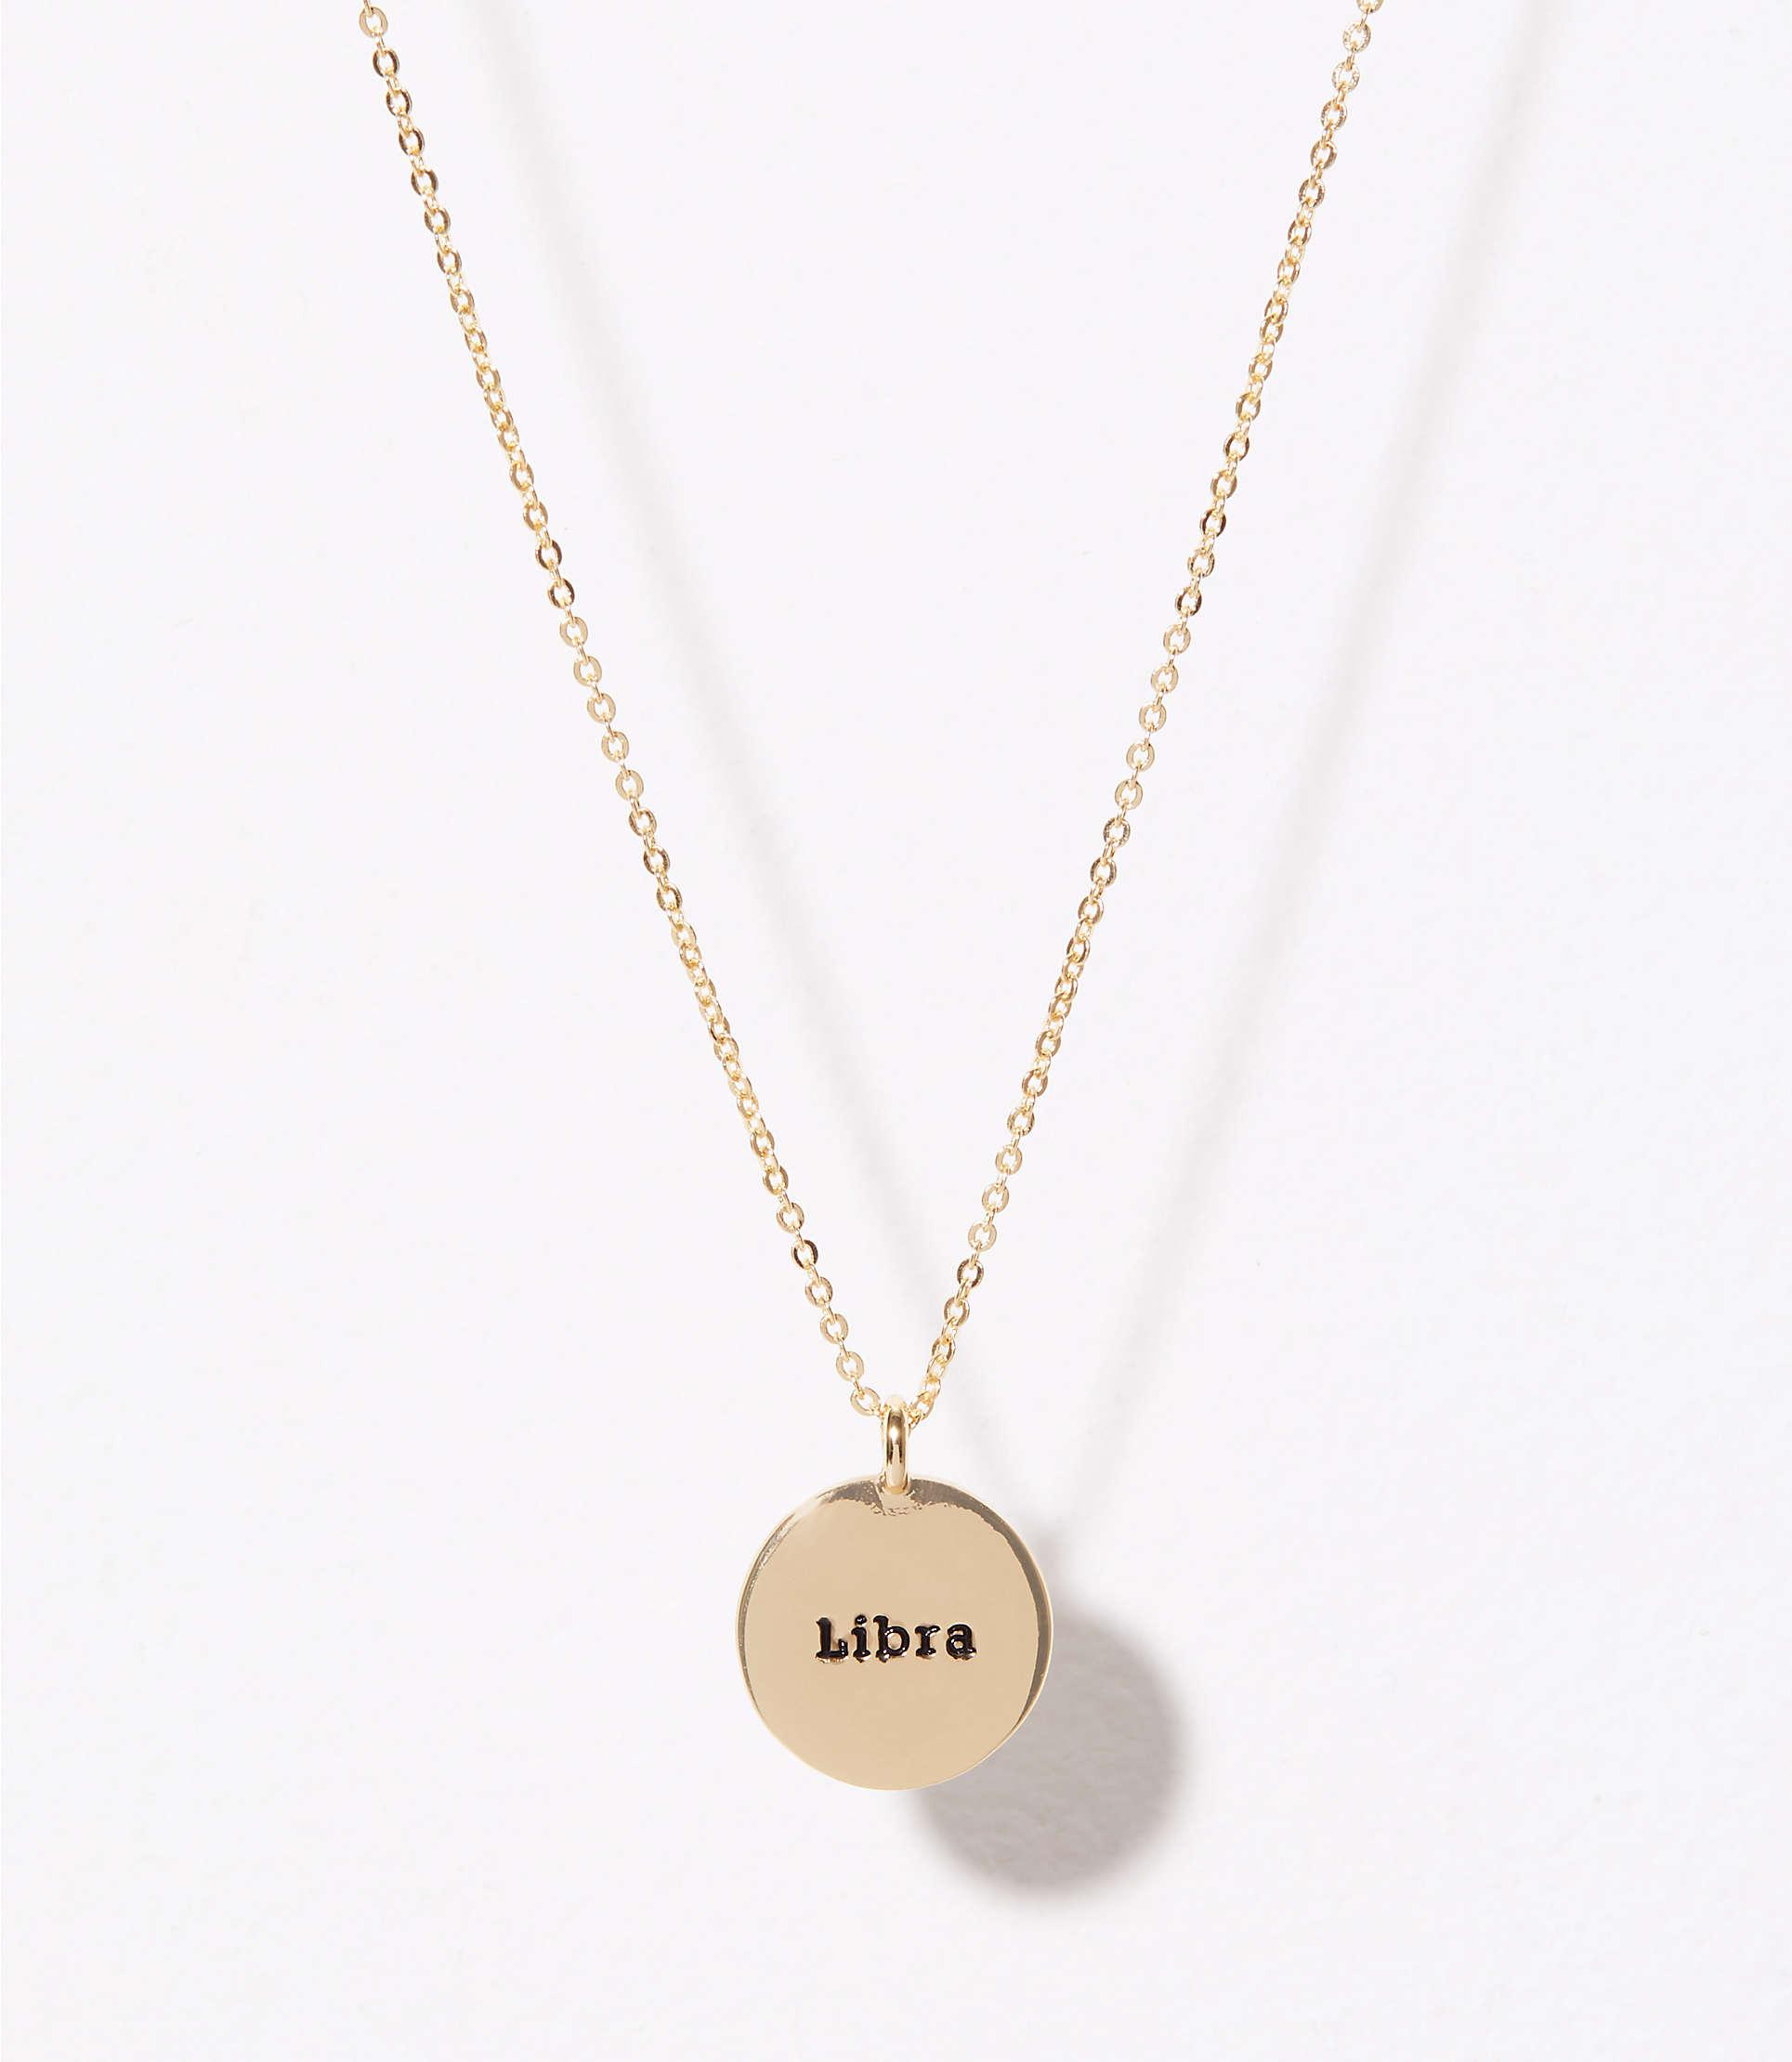 fine libra jewellery uk october to new necklace necklaces september astrology web